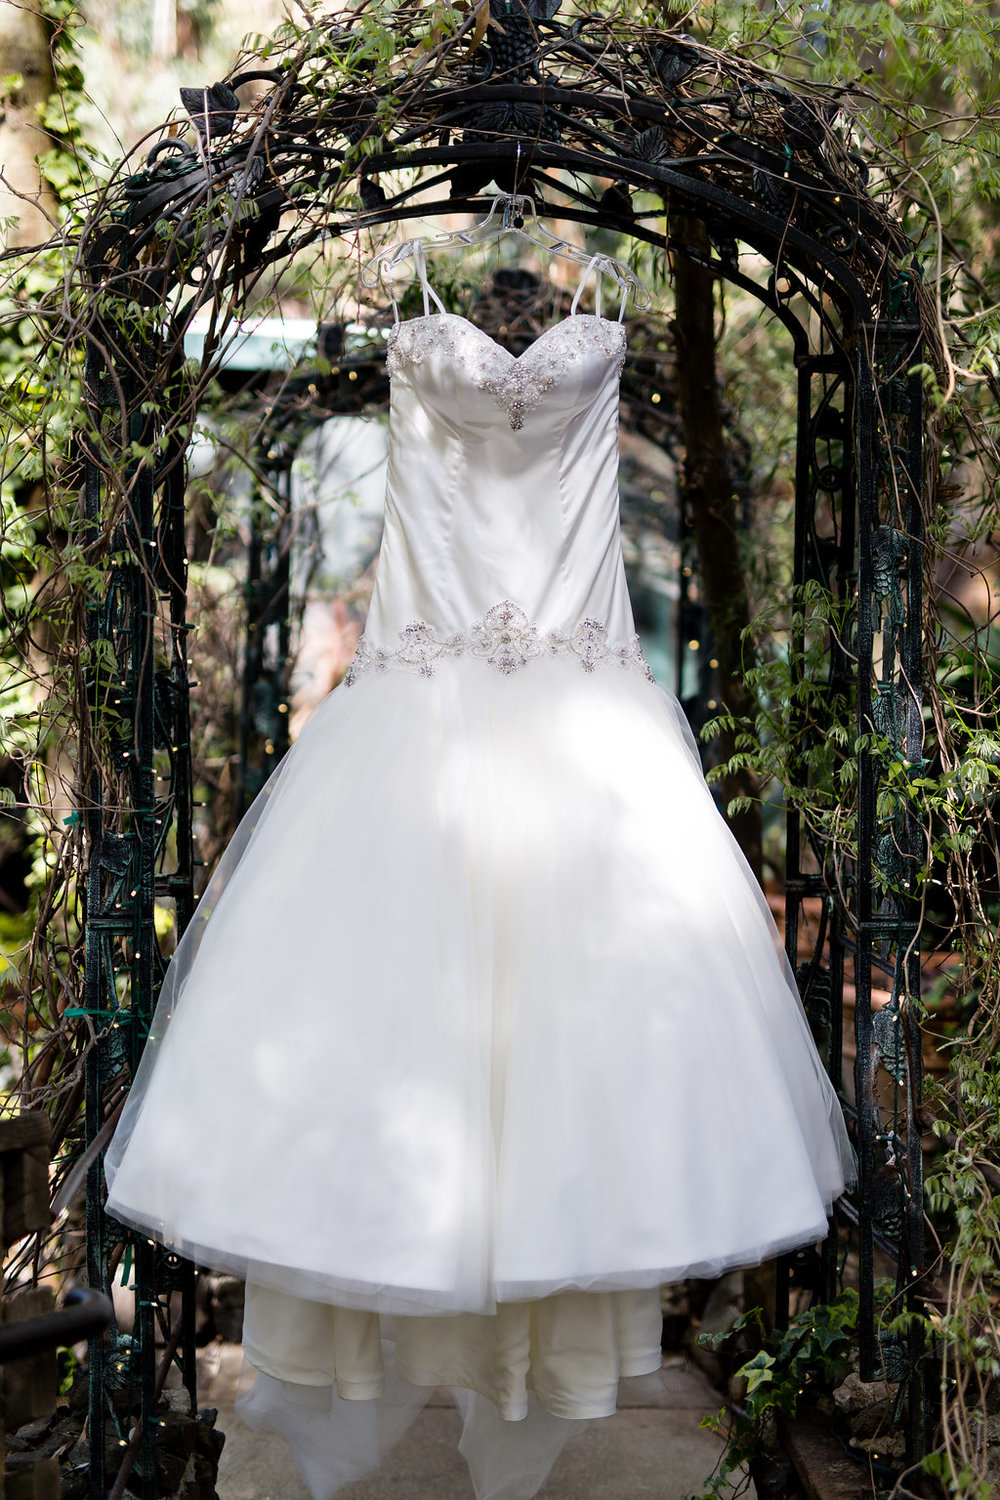 calamigos-ranch-wedding-dress.jpeg